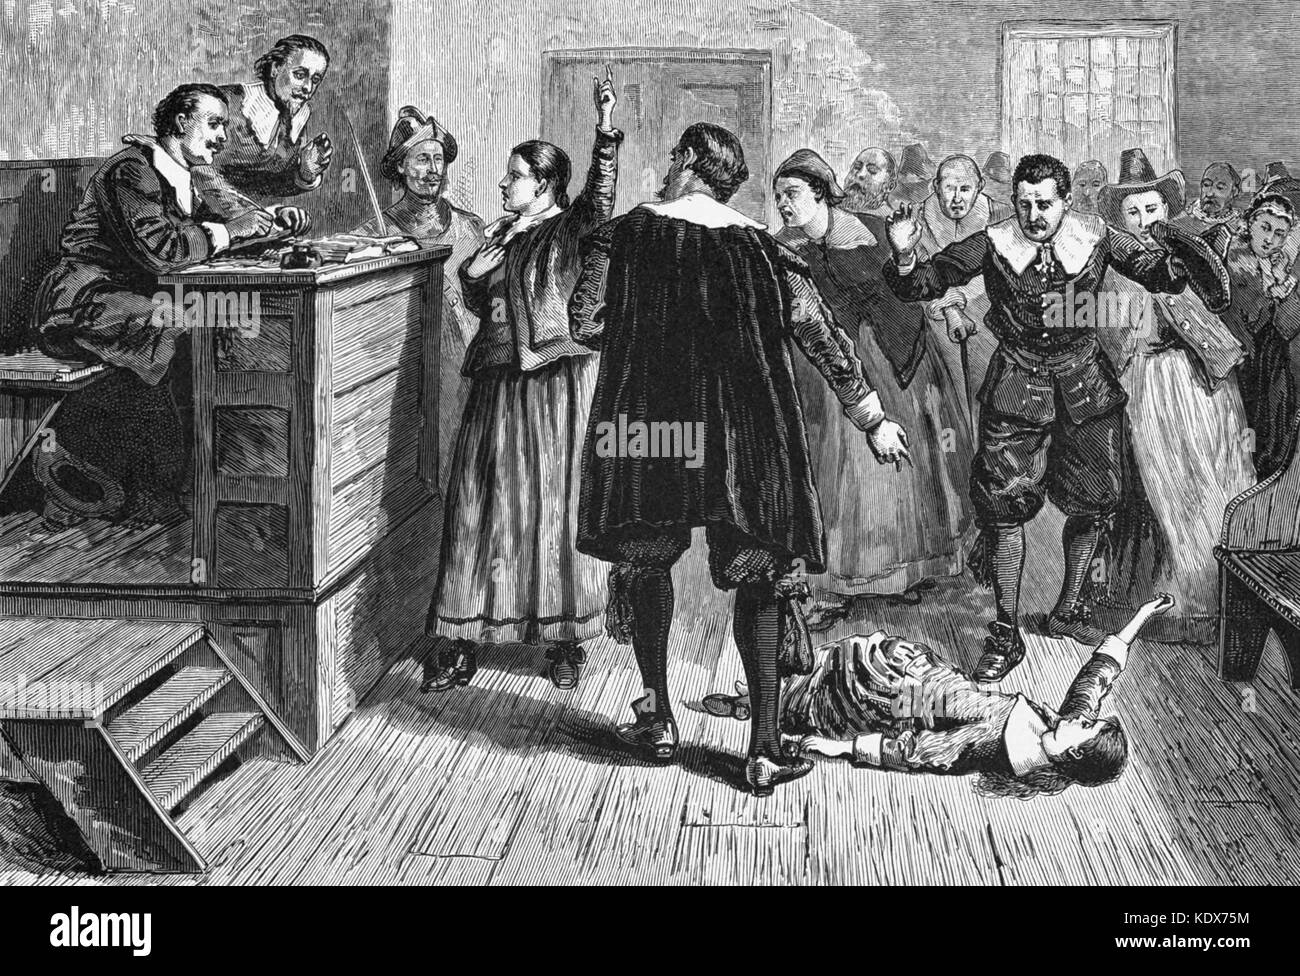 Salem Witch Trials, 1692 - 1693, The central figure in this 1876 illustration of the courtroom is generally identified - Stock Image